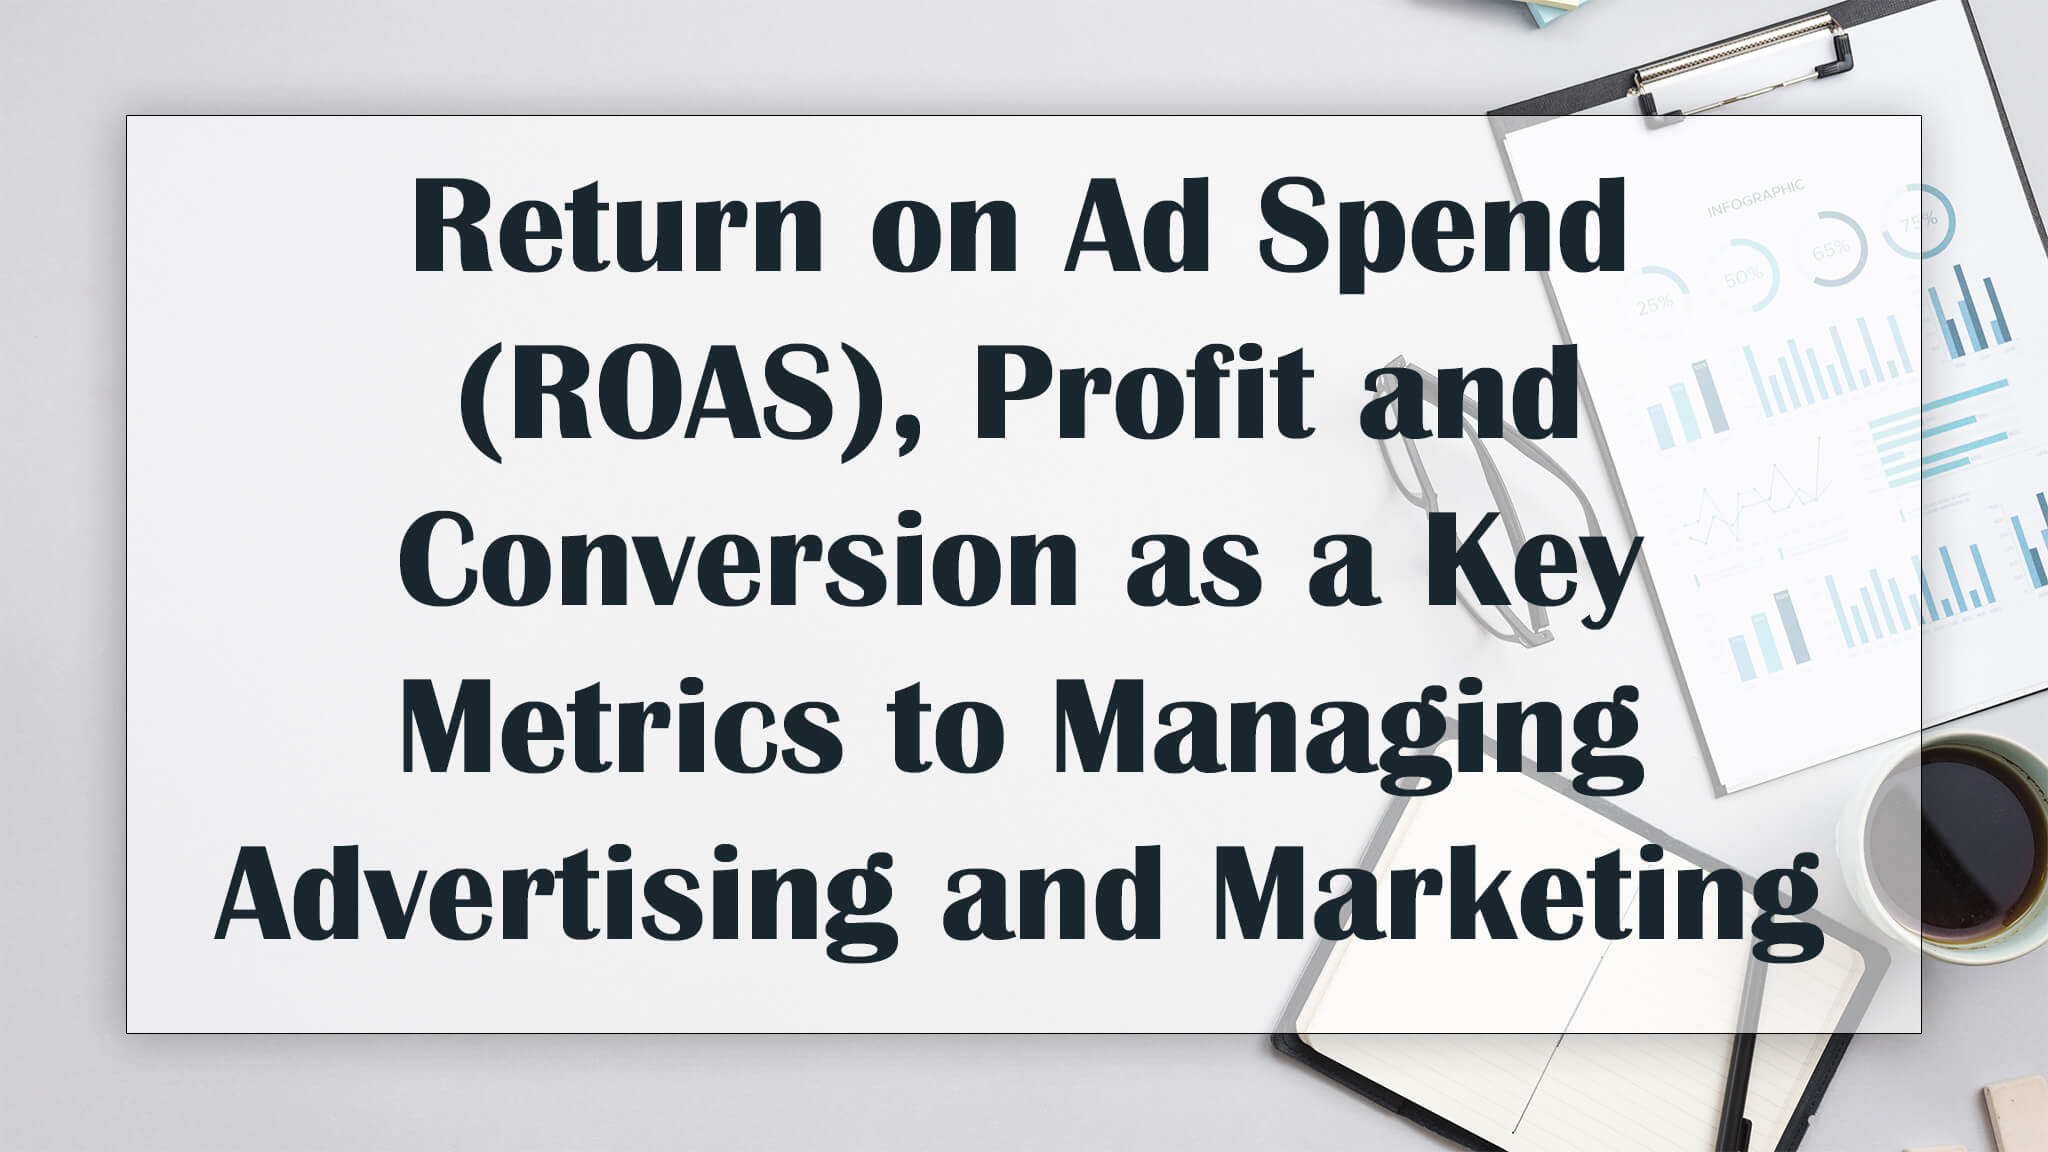 Return on Ad Spend (ROAS), Profit and Conversion as a Key Metrics to Managing Advertising and Marketing Spends